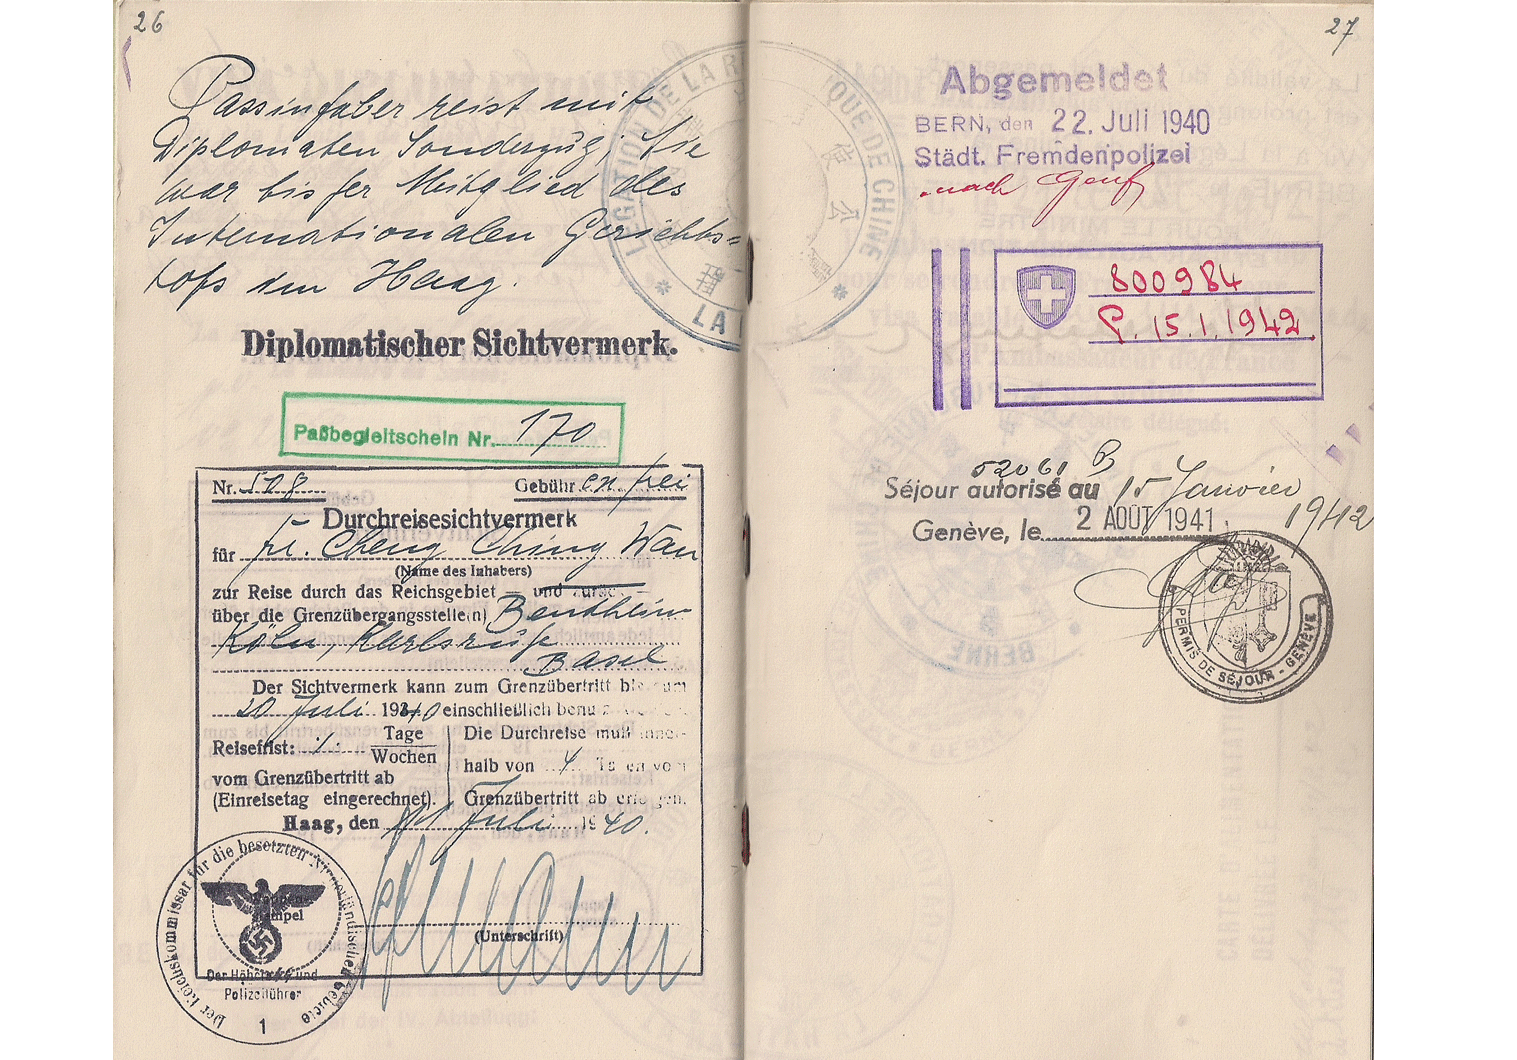 WW2 German visa